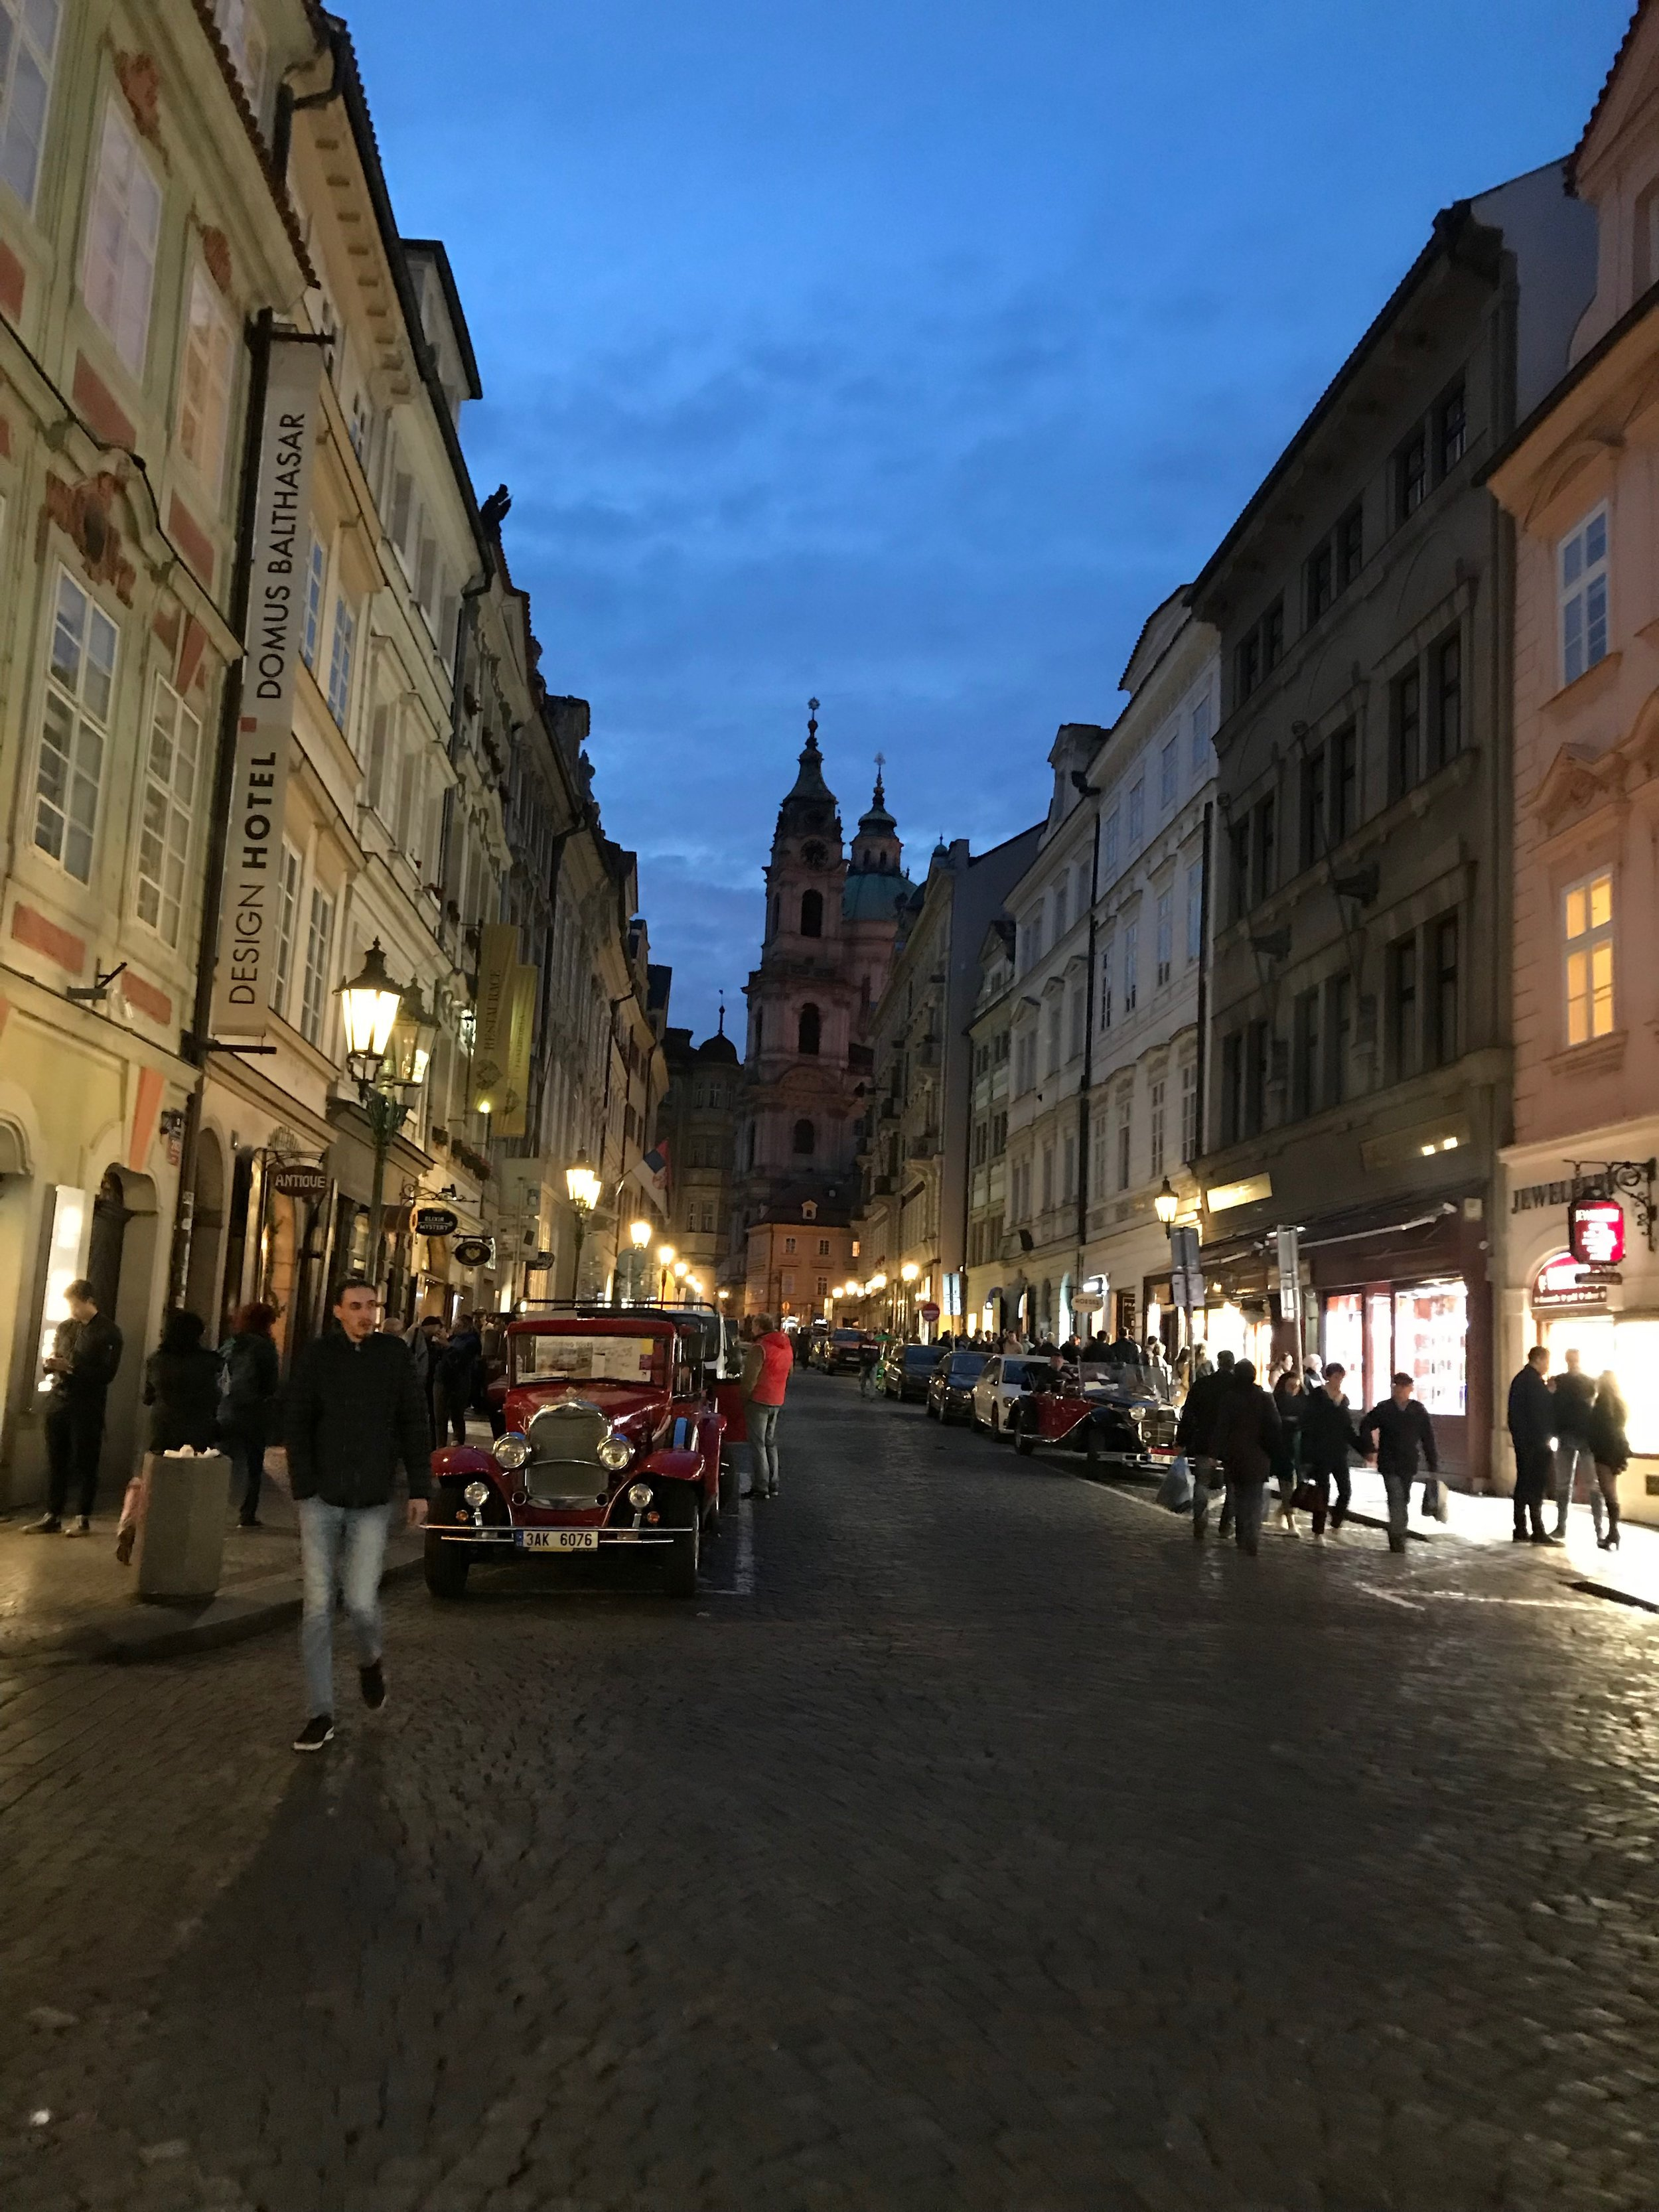 We crossed as the sun was setting into Mala Strana (our favorite part of town)